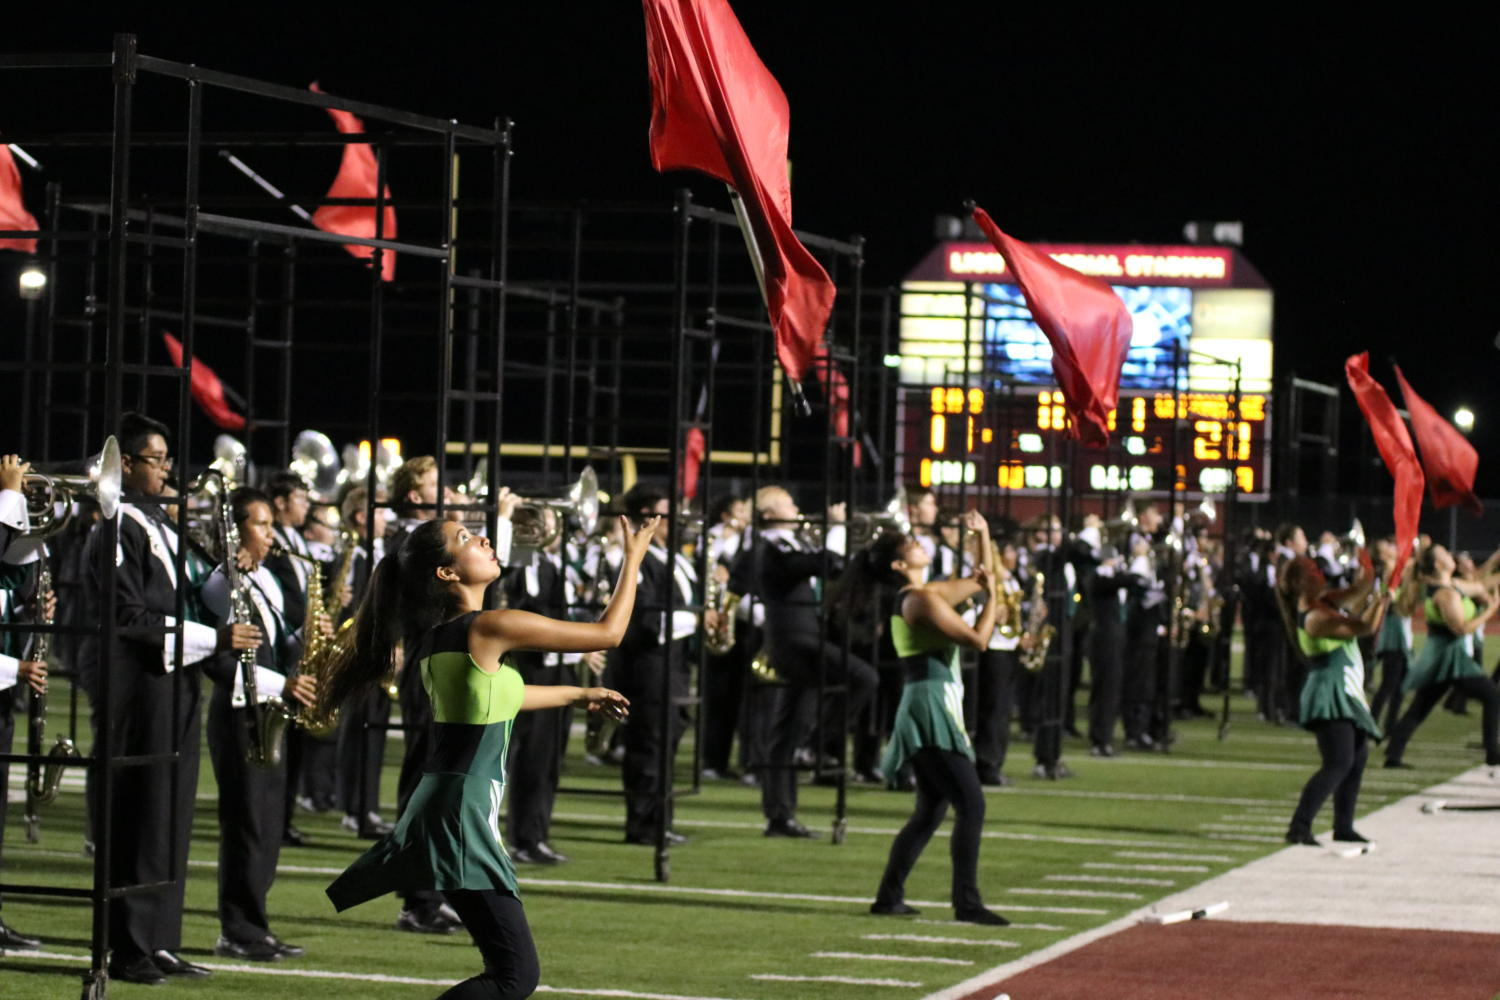 The Spirit of Waxahachie performs at halftime of the 2018 Battle of 287.